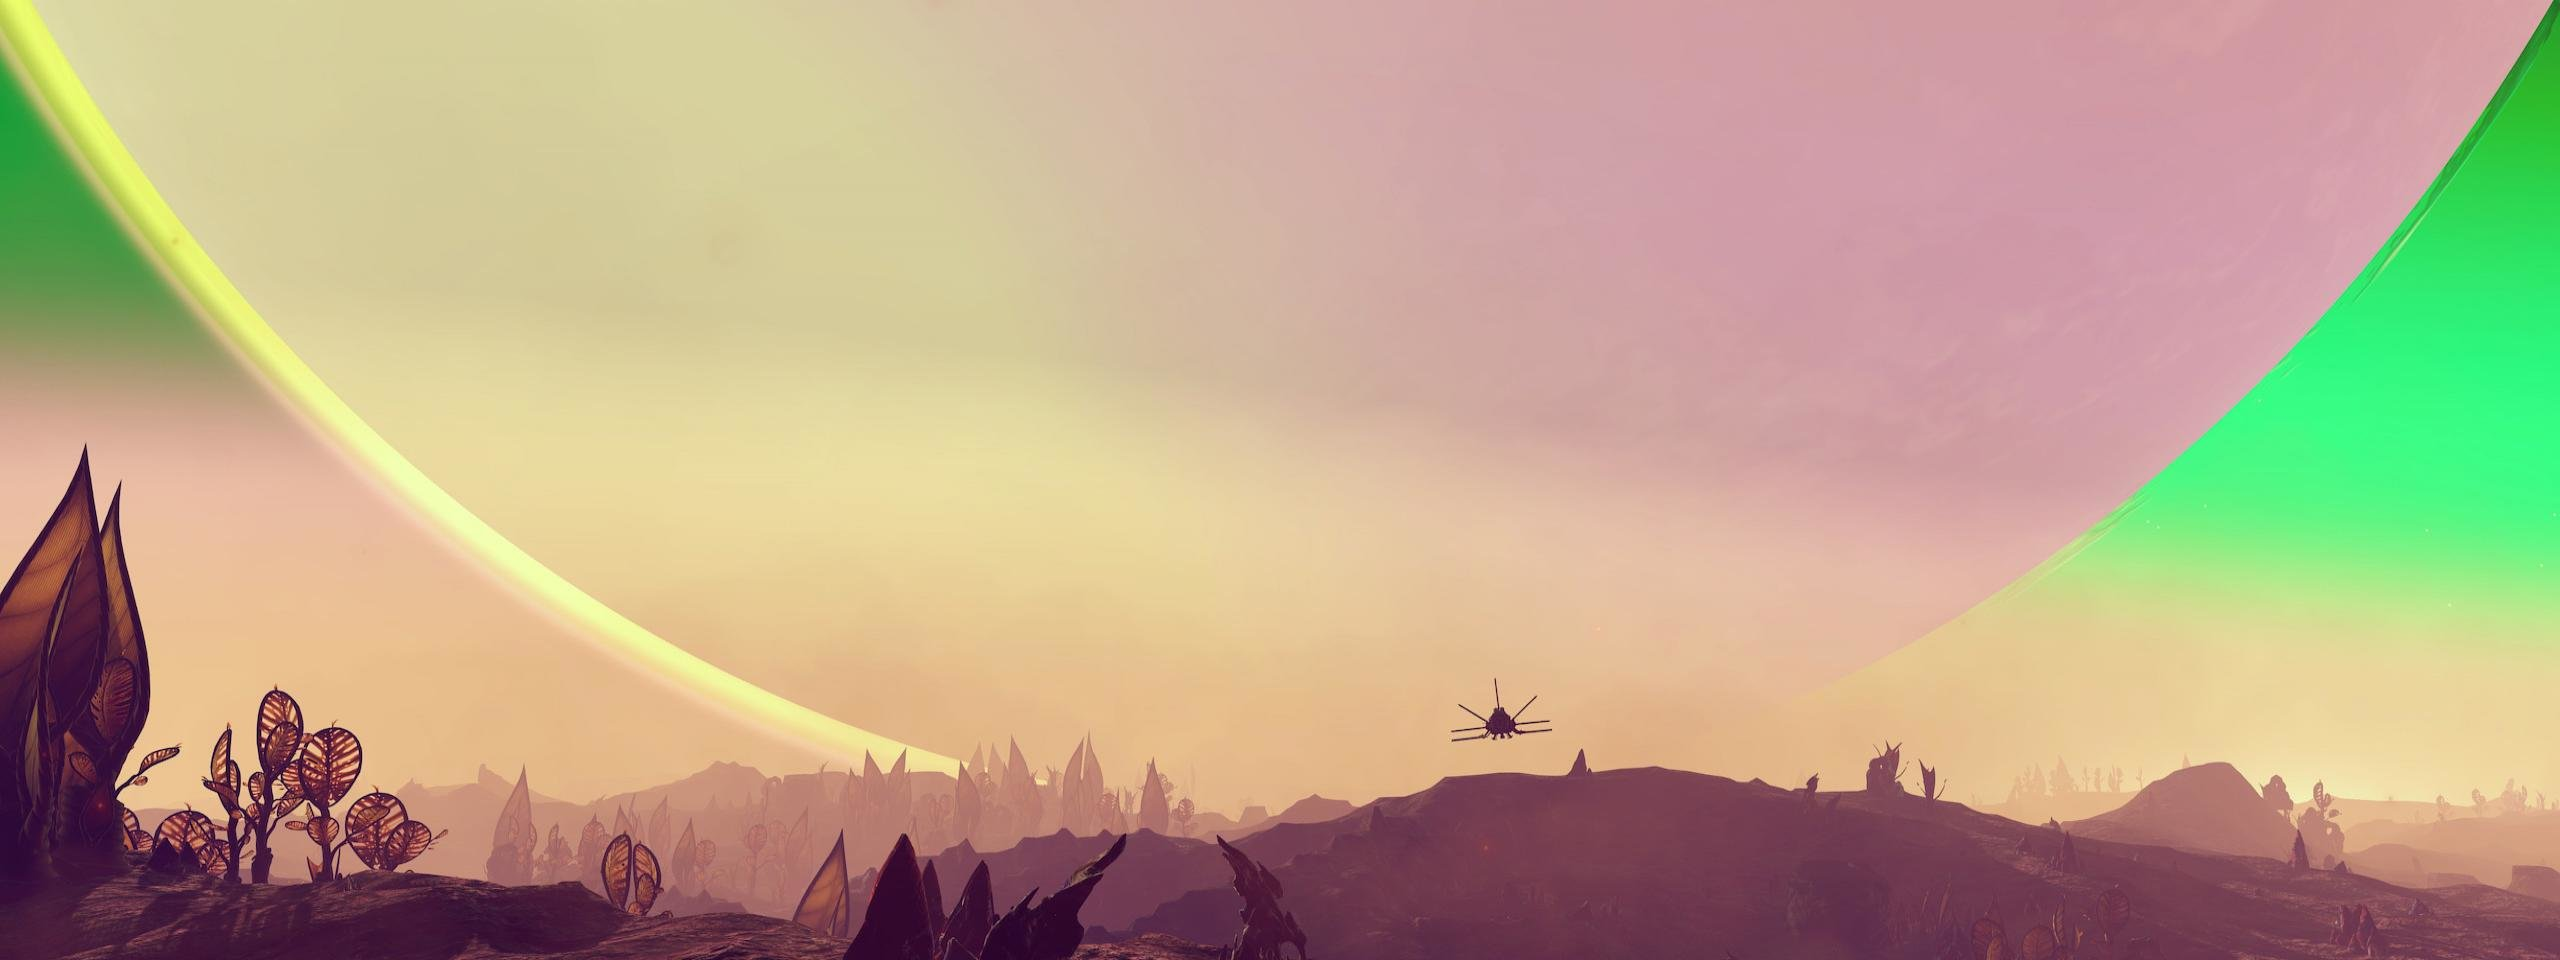 Awesome No Man's Sky free wallpaper ID:110455 for dual screen 2560x960 desktop